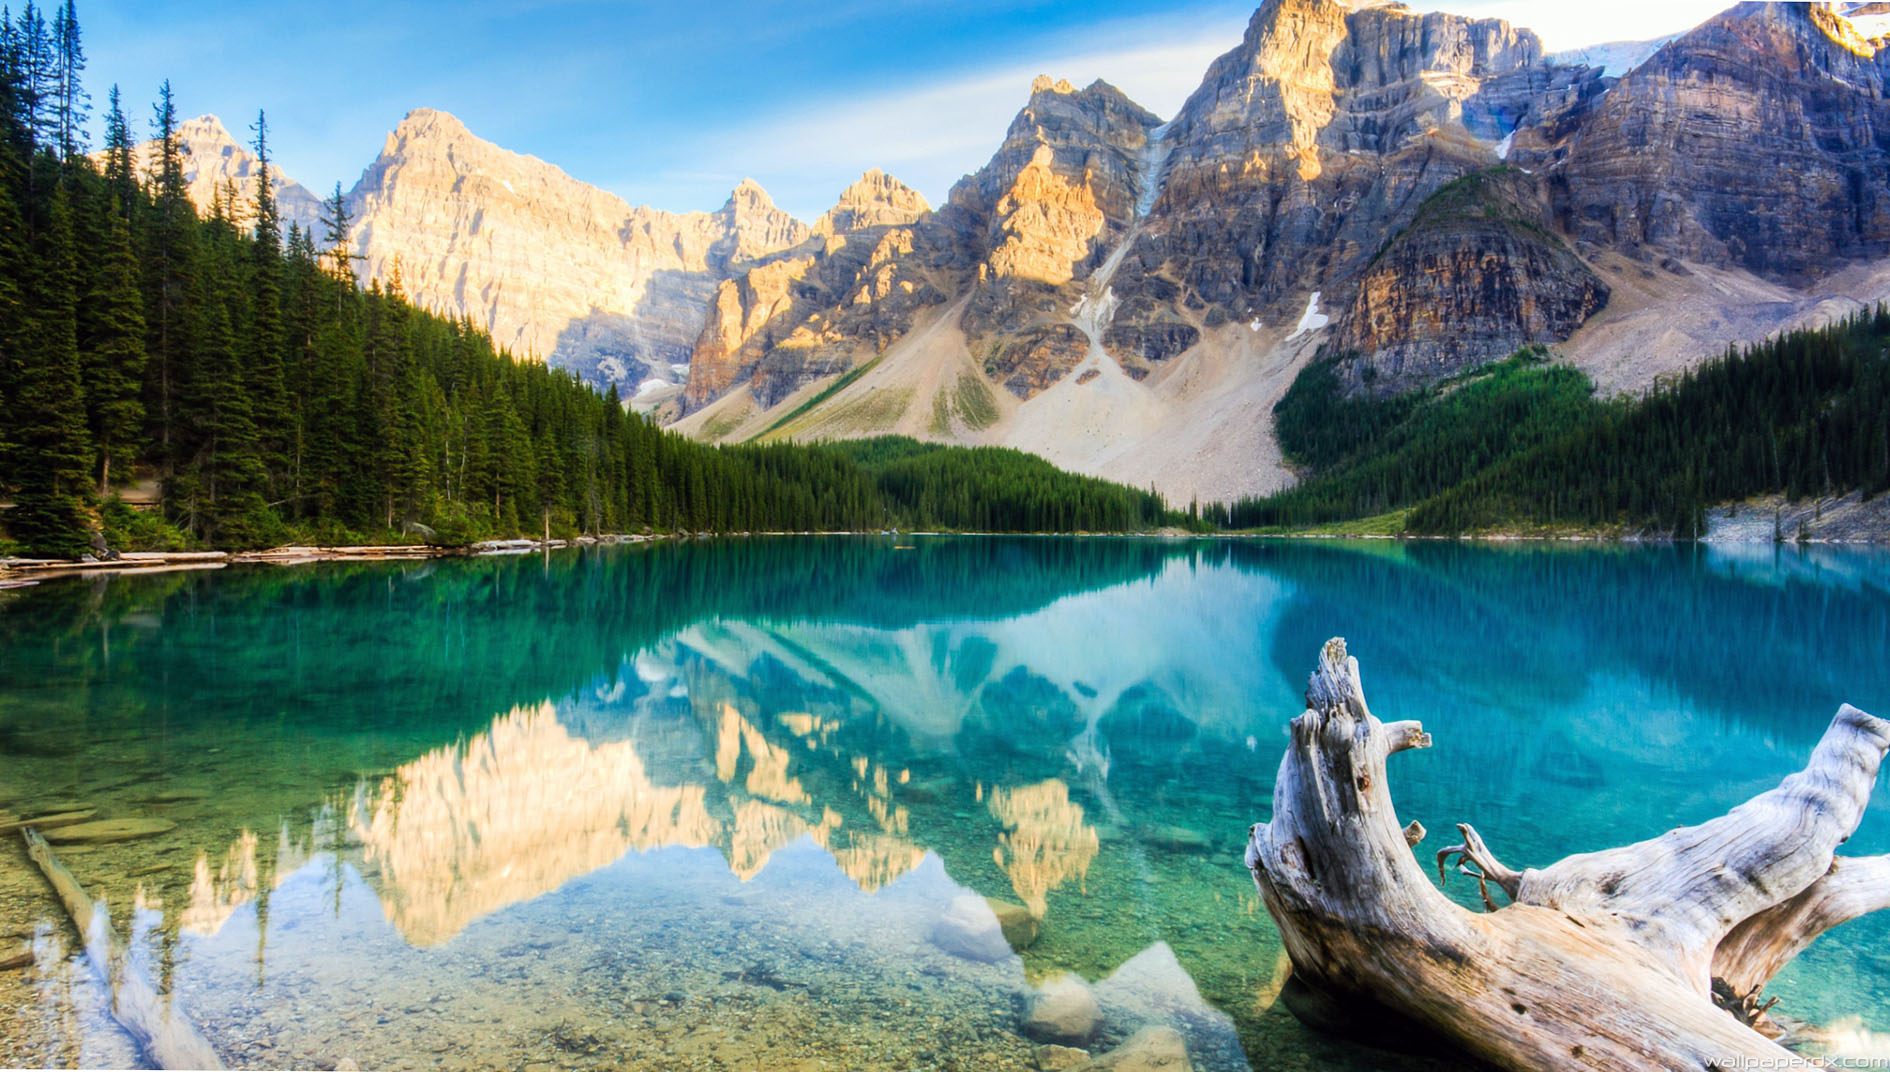 170 nature full hd wallpapers 1920x1080,natural landscape,nature,mountain,body of water,mountainous landforms